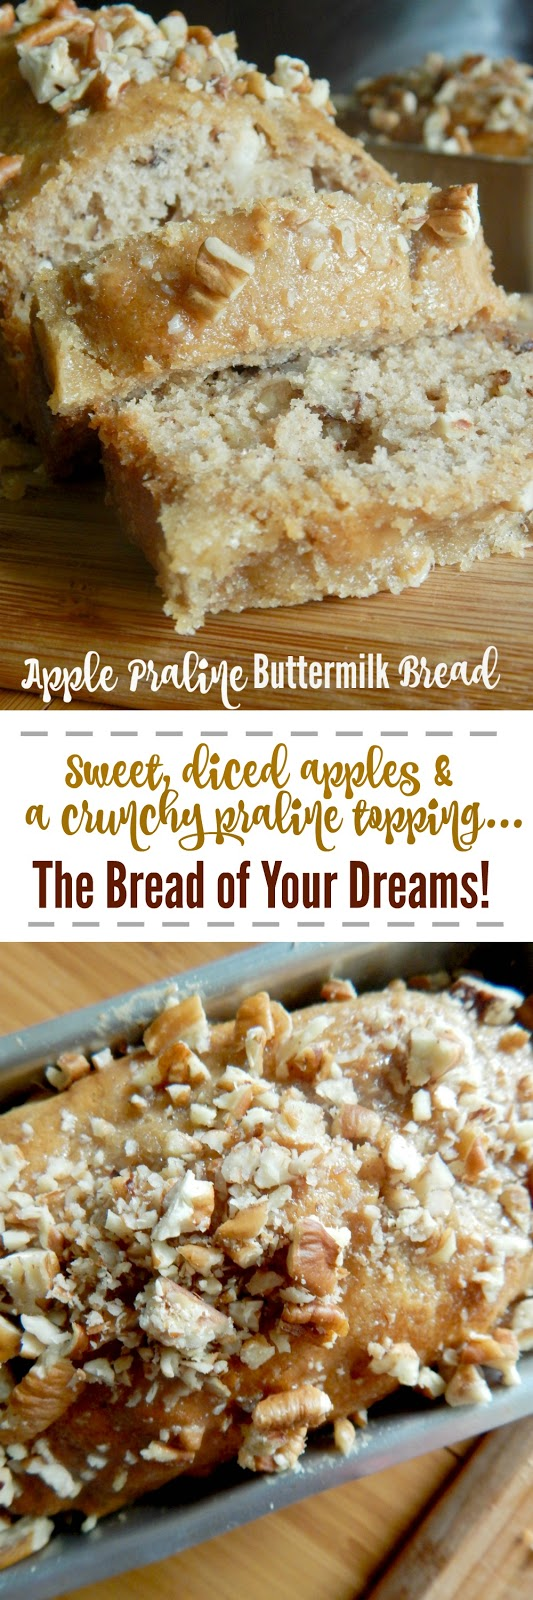 Apple Praline Buttermilk Bread...this sweet bread gets even better when you pour the HOT praline topping over the finished product.  It gets crunchy and so good! (sweetandsavoryfood.com)